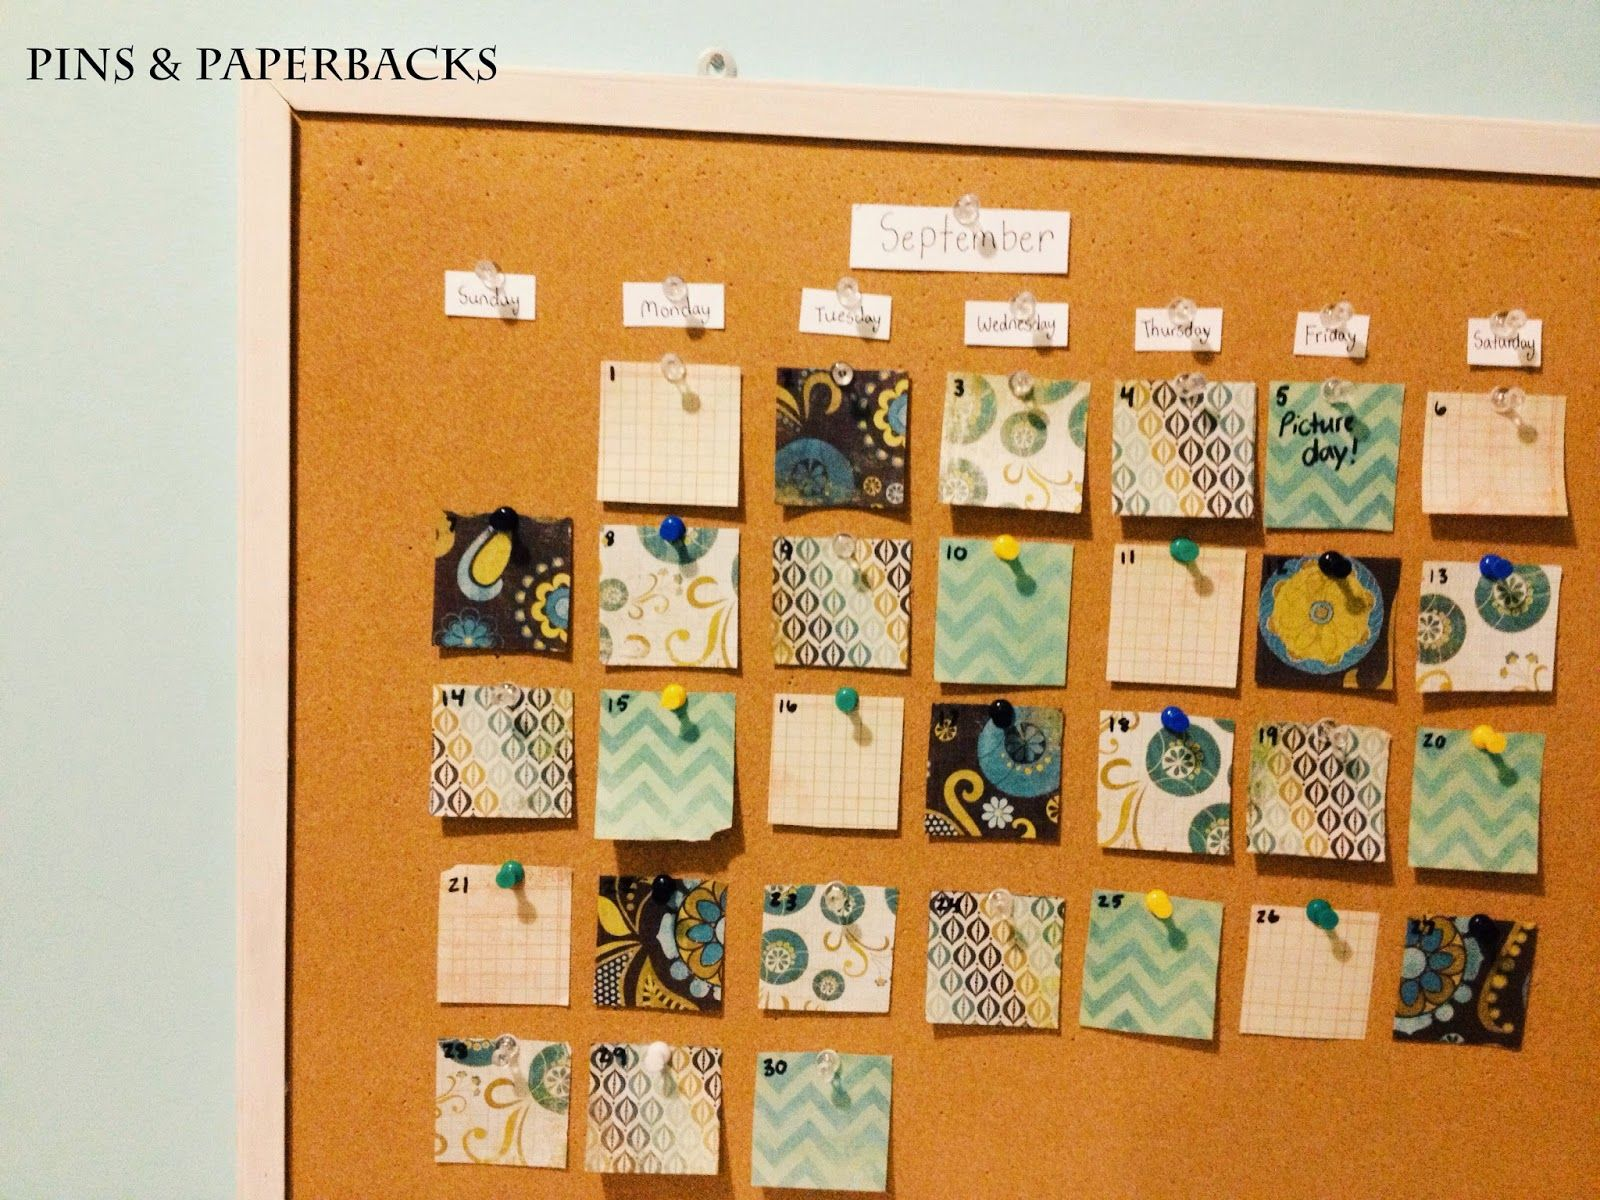 3 Simple Back to School Projects Pins & Paperbacks Diy